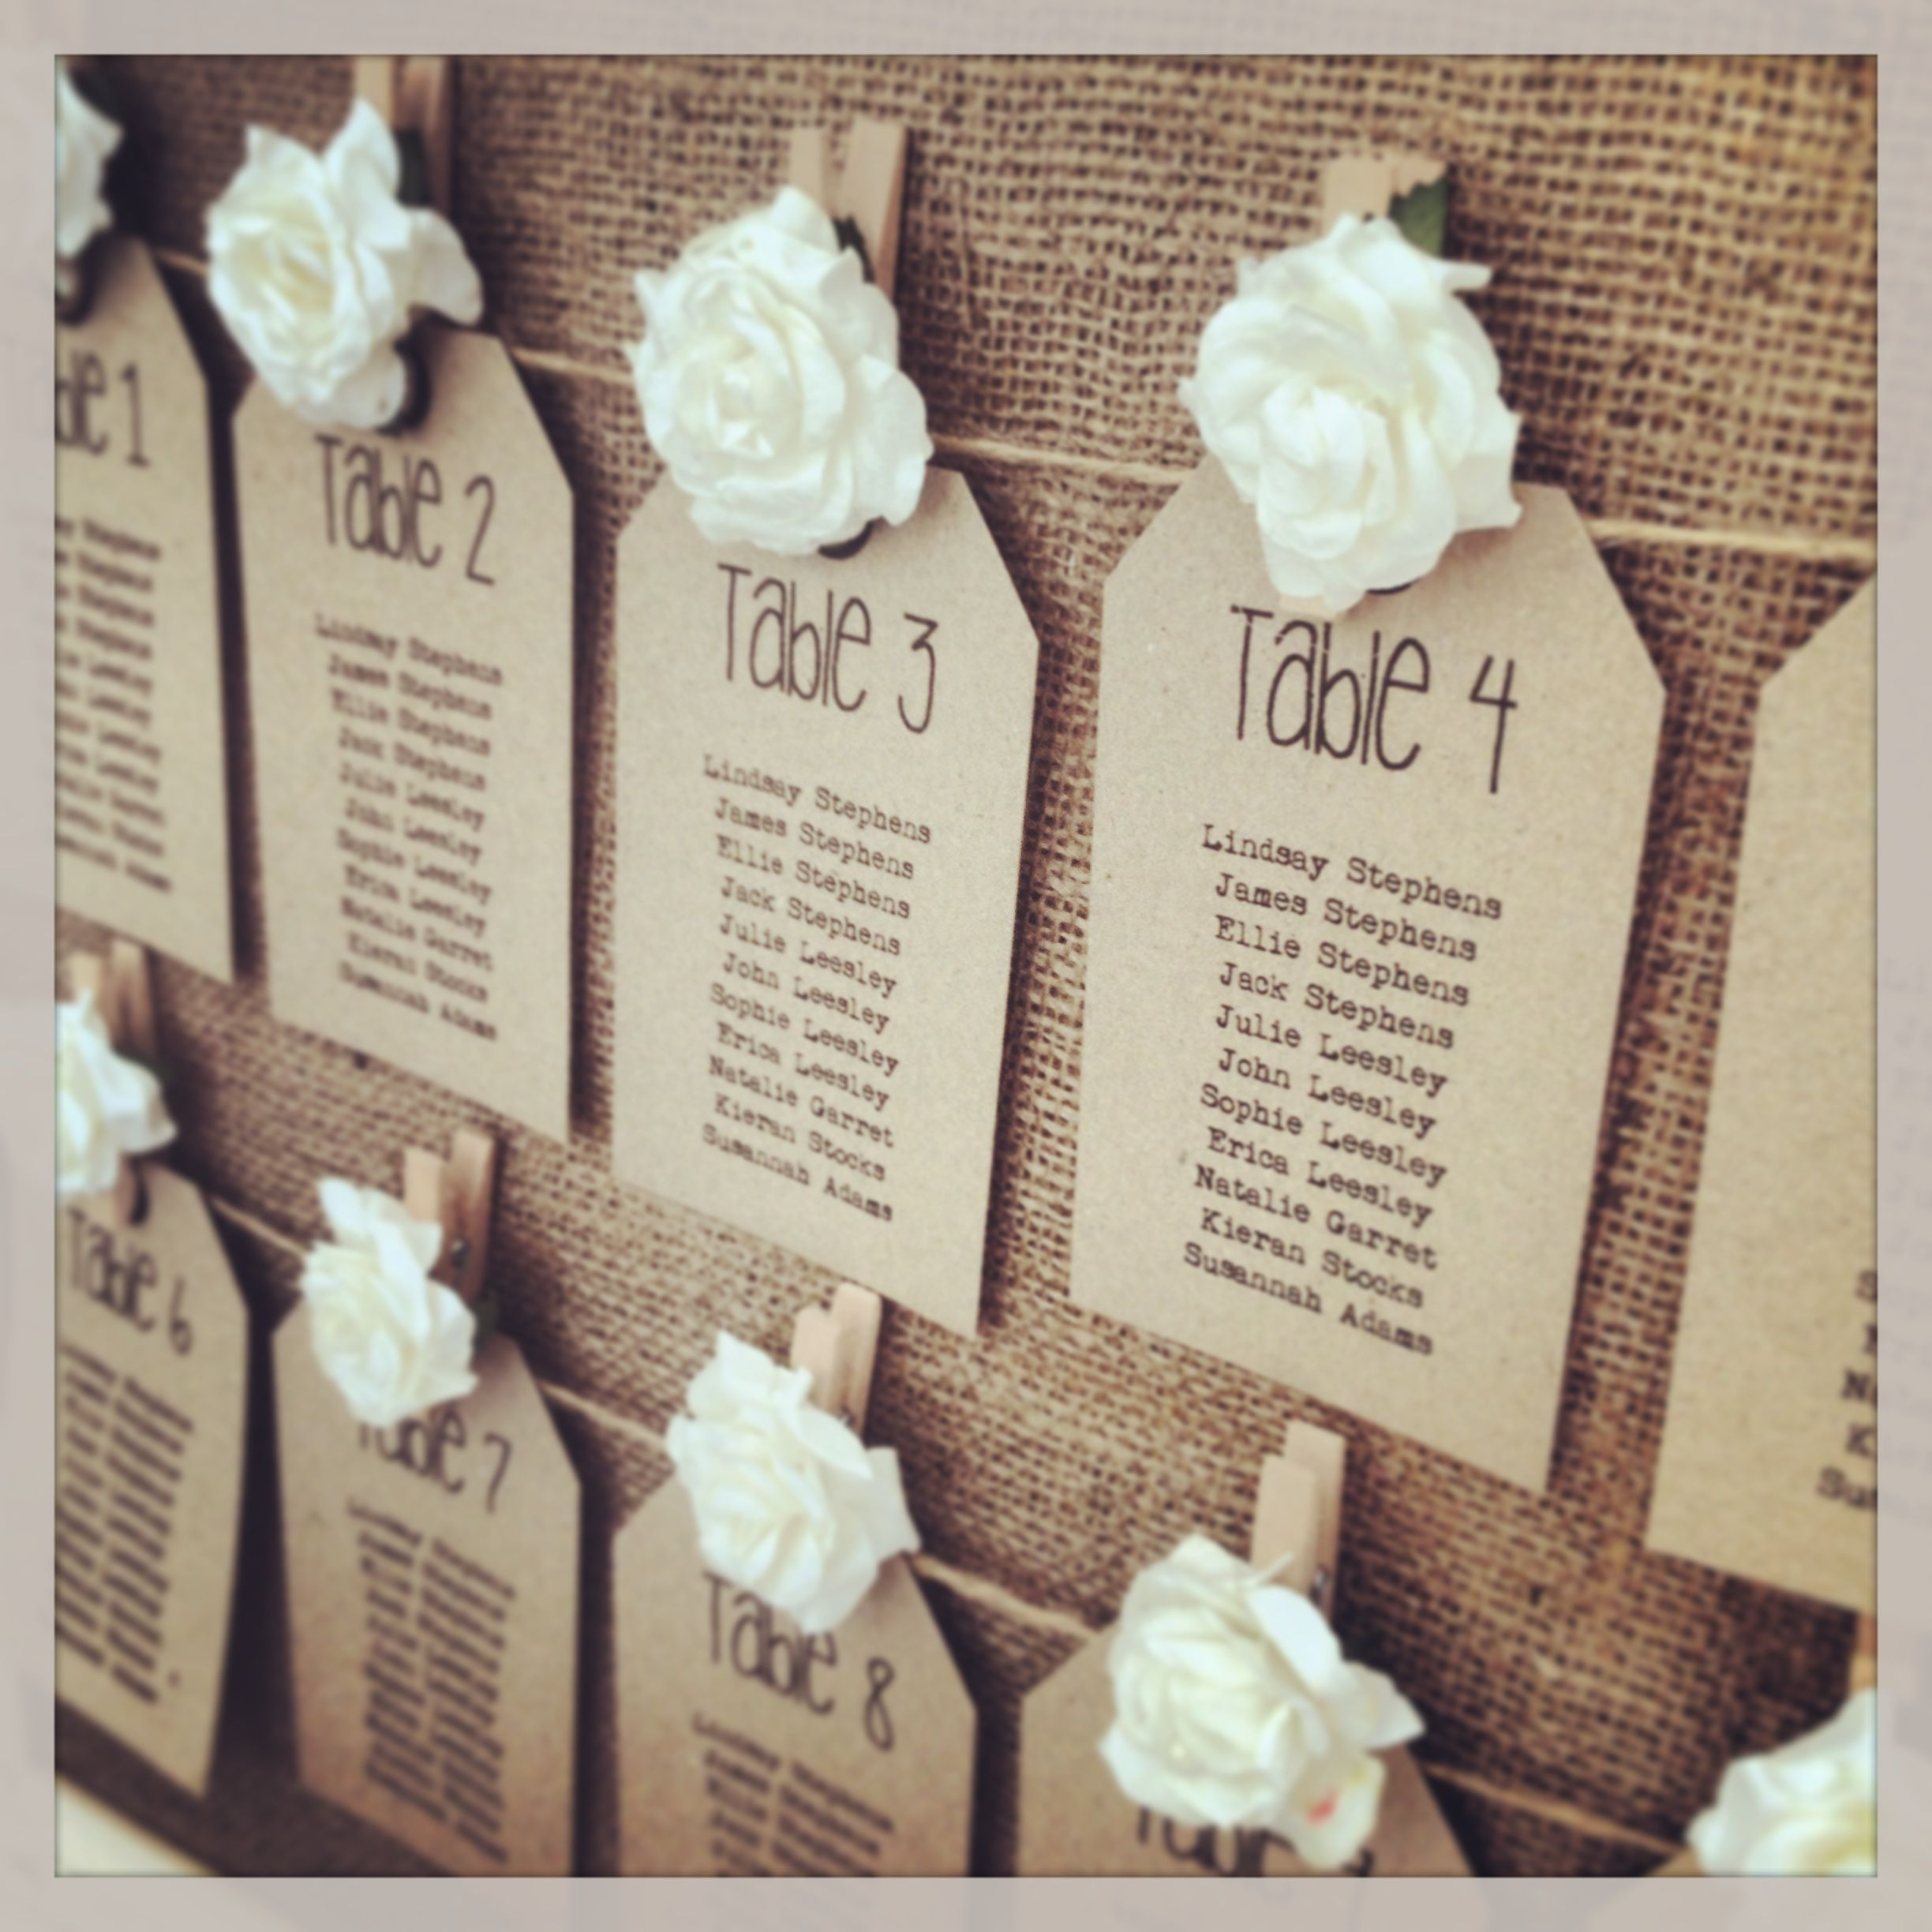 Rustic Wedding Seating Chart Ideas: Rustic Table Plan Tags From Www.thevowweddingboutique.com